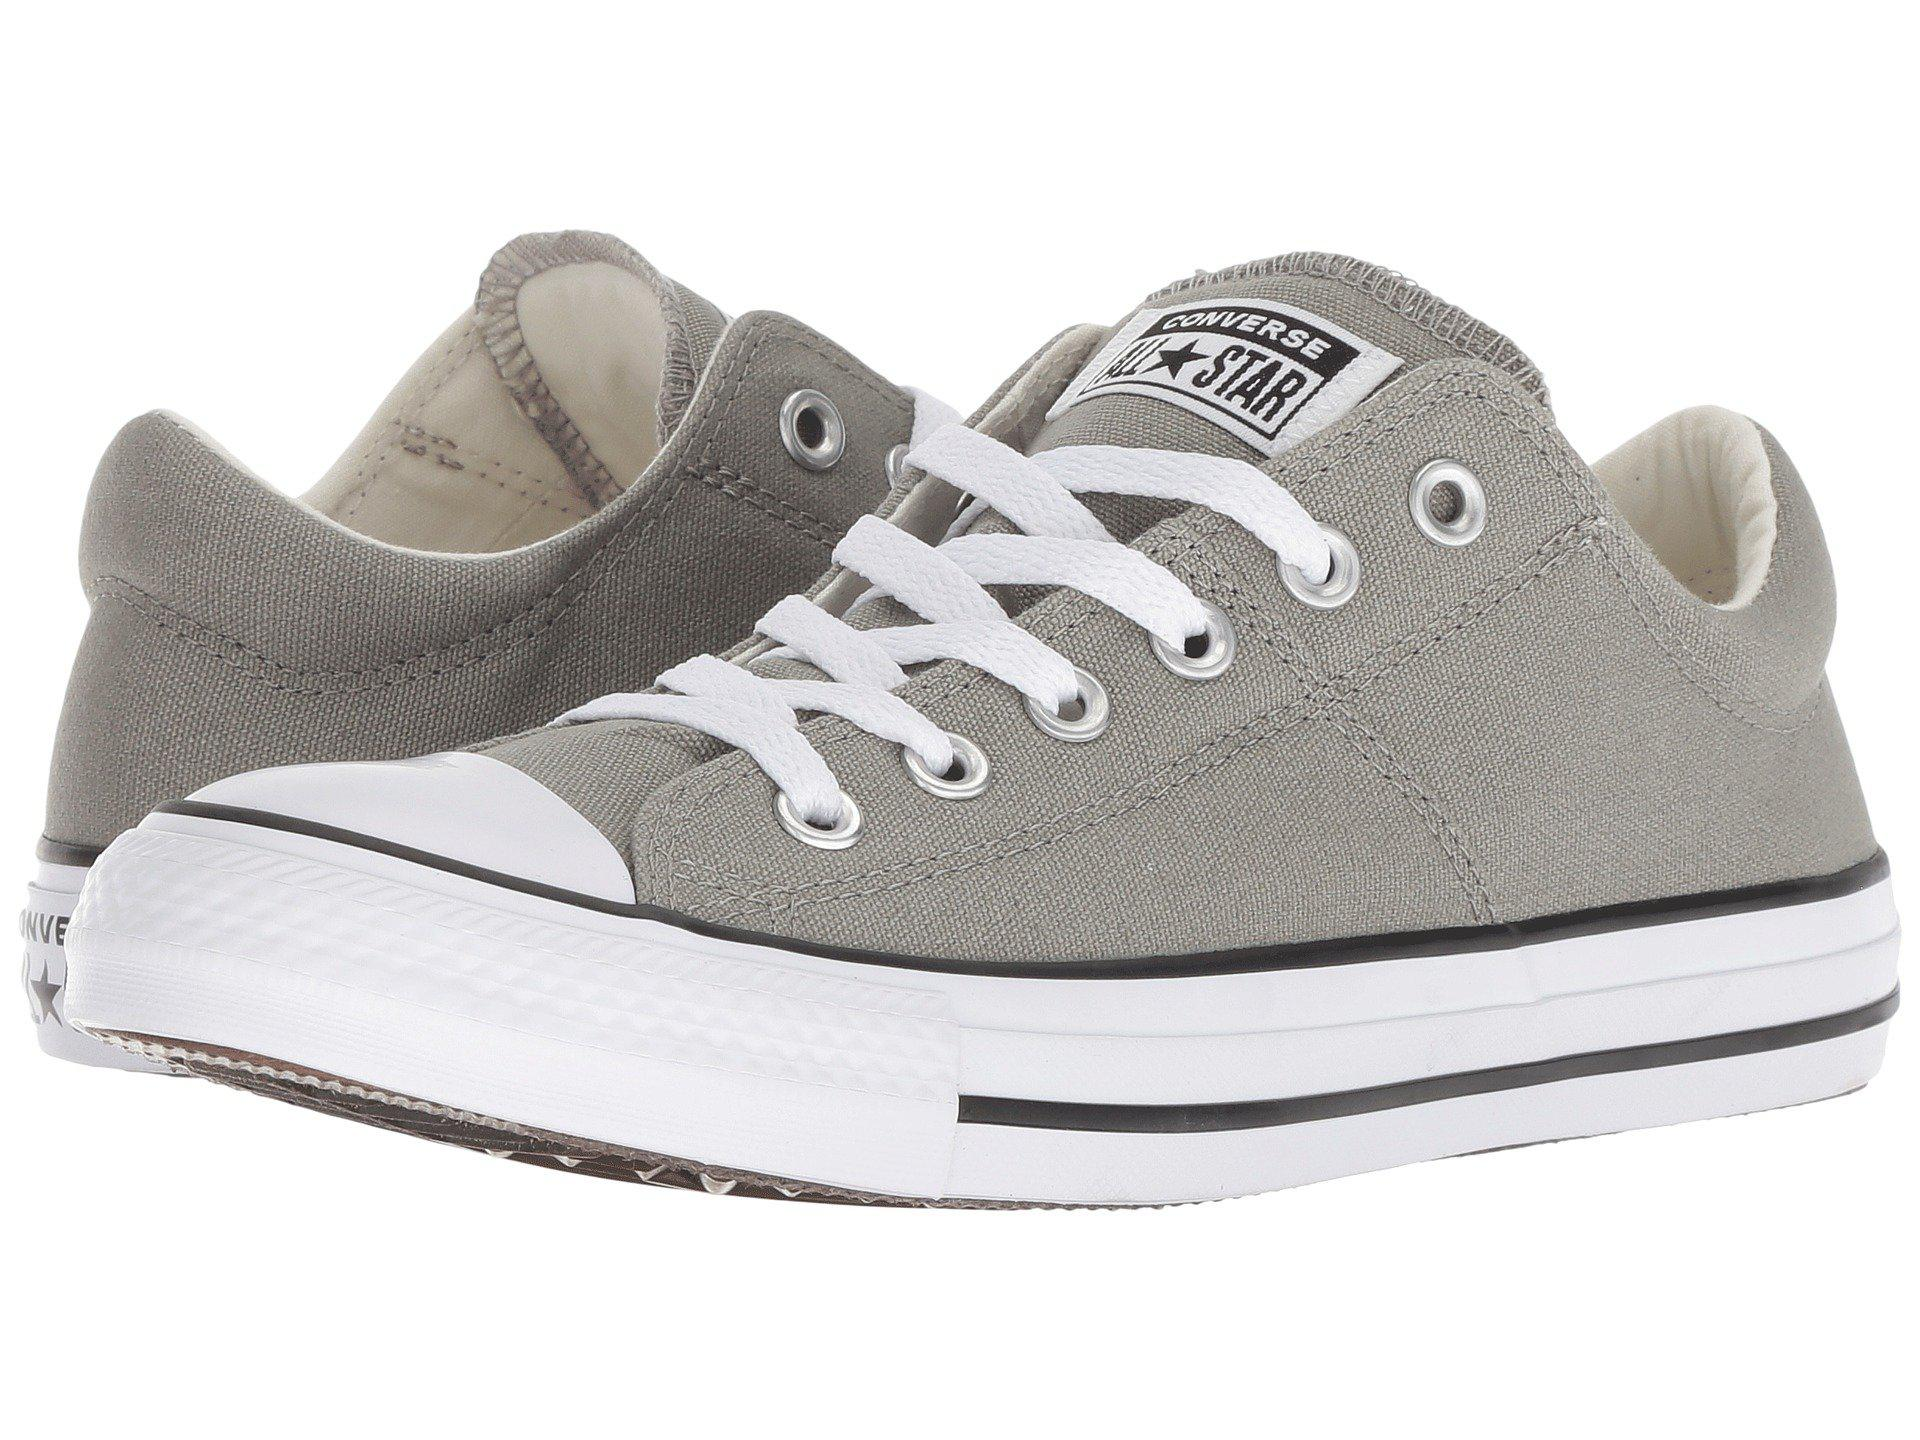 0f70504f2fb6d4 Lyst - Converse Chuck Taylor All Star Madison - Ox (white white ...